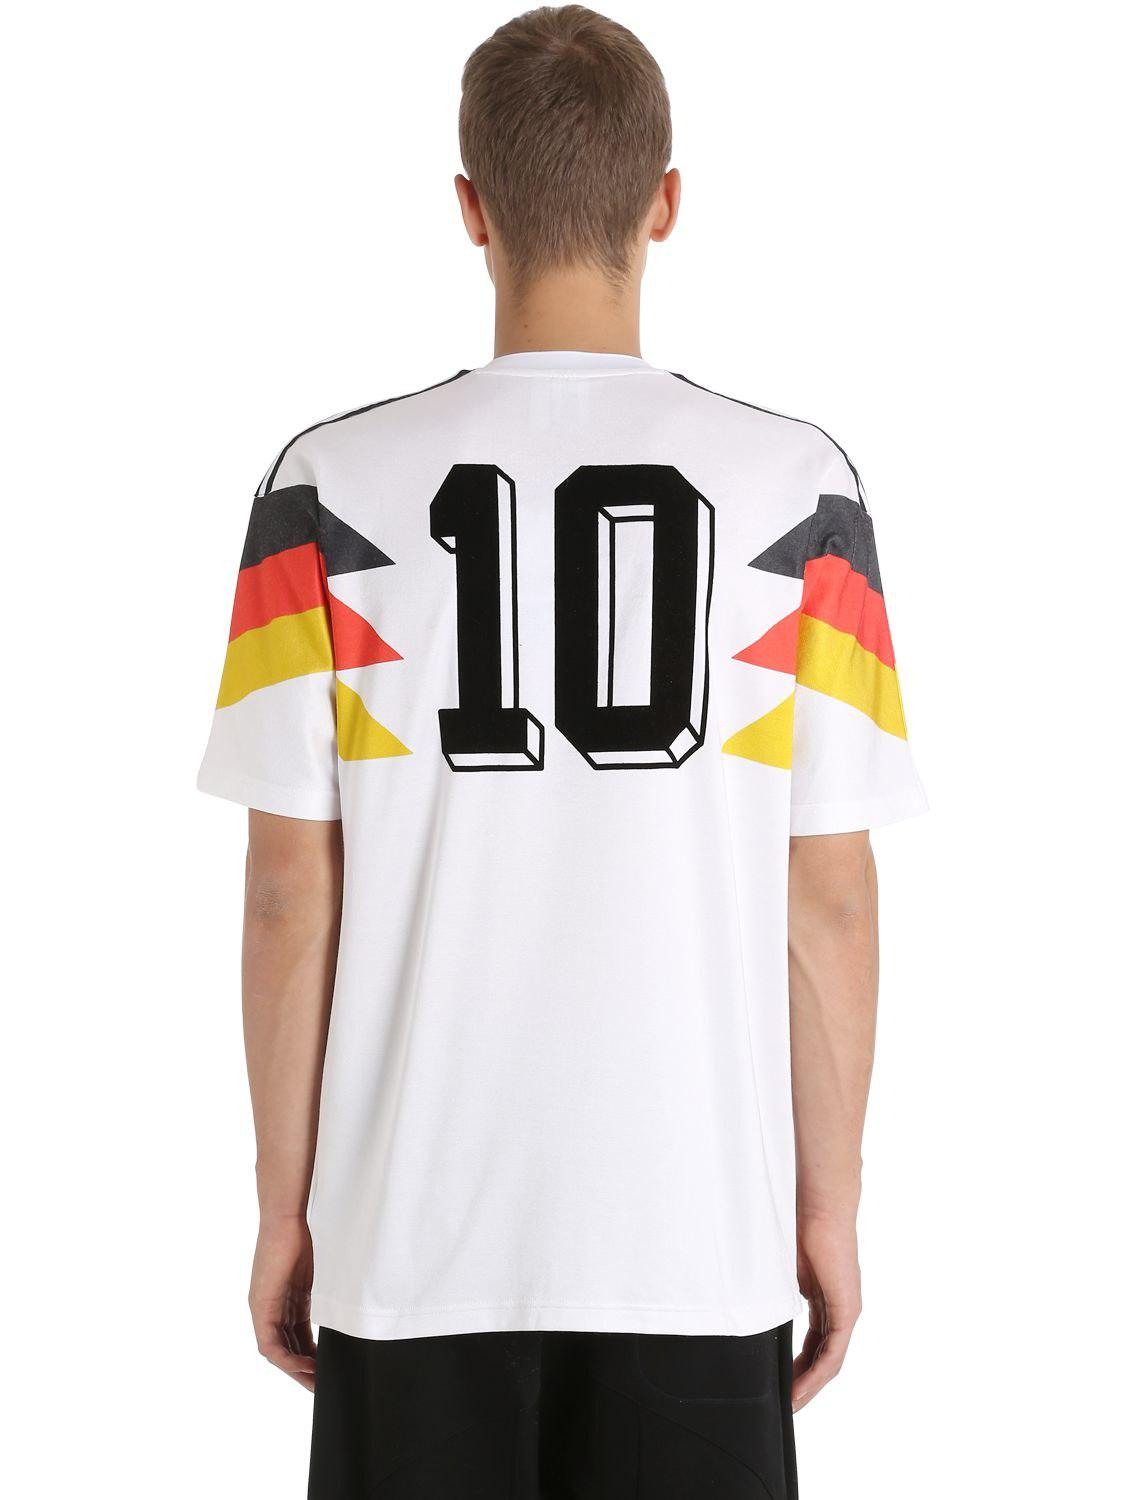 adidas Originals Germany 1990 Football Jersey in White for Men - Lyst